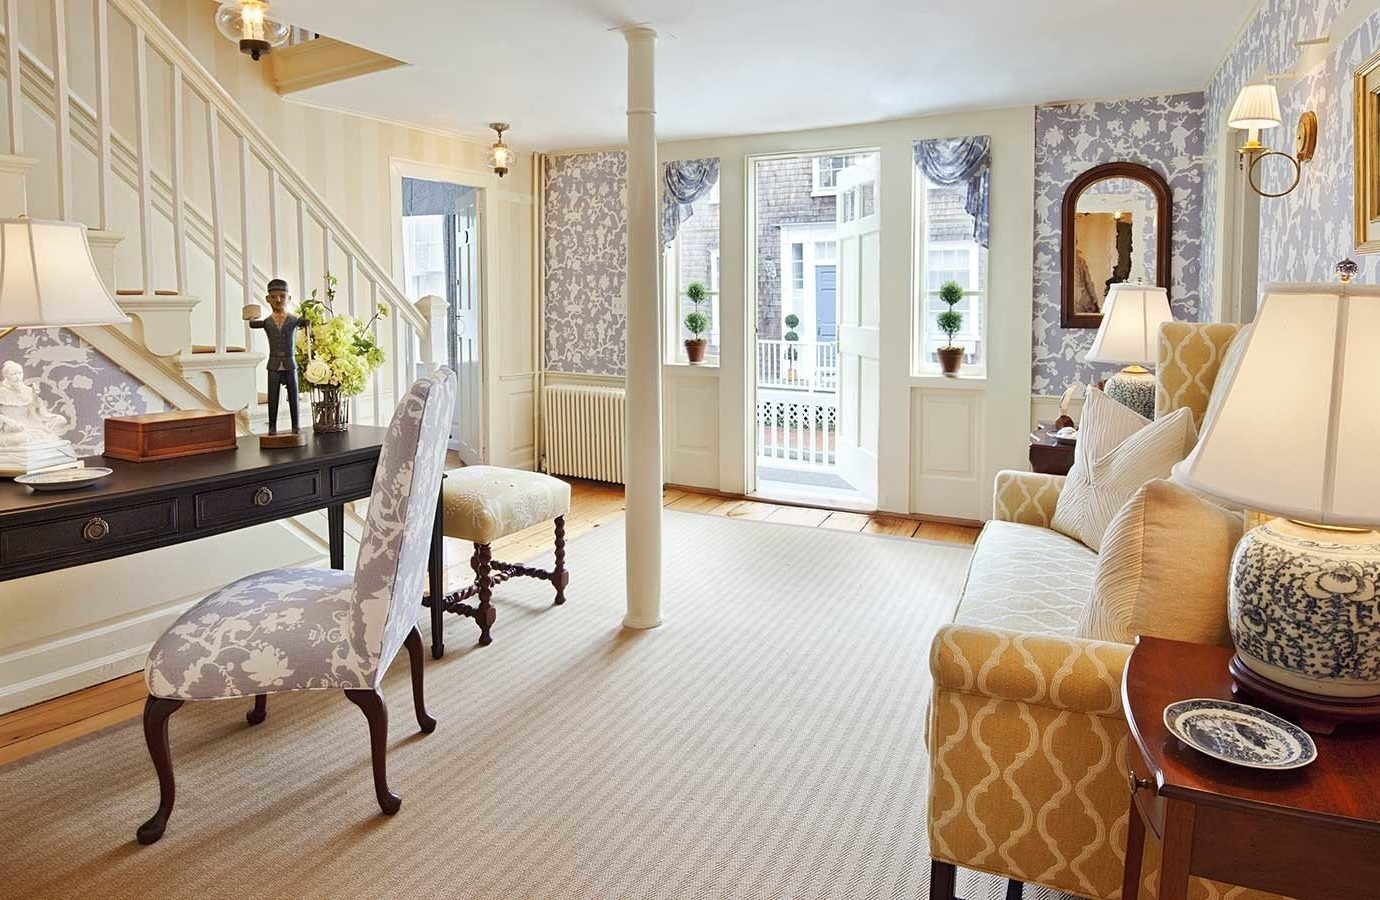 Hotels indoor floor room wall window living room Living property home interior design flooring ceiling dining room real estate estate furniture hardwood wood flooring Bedroom interior designer window treatment decorated